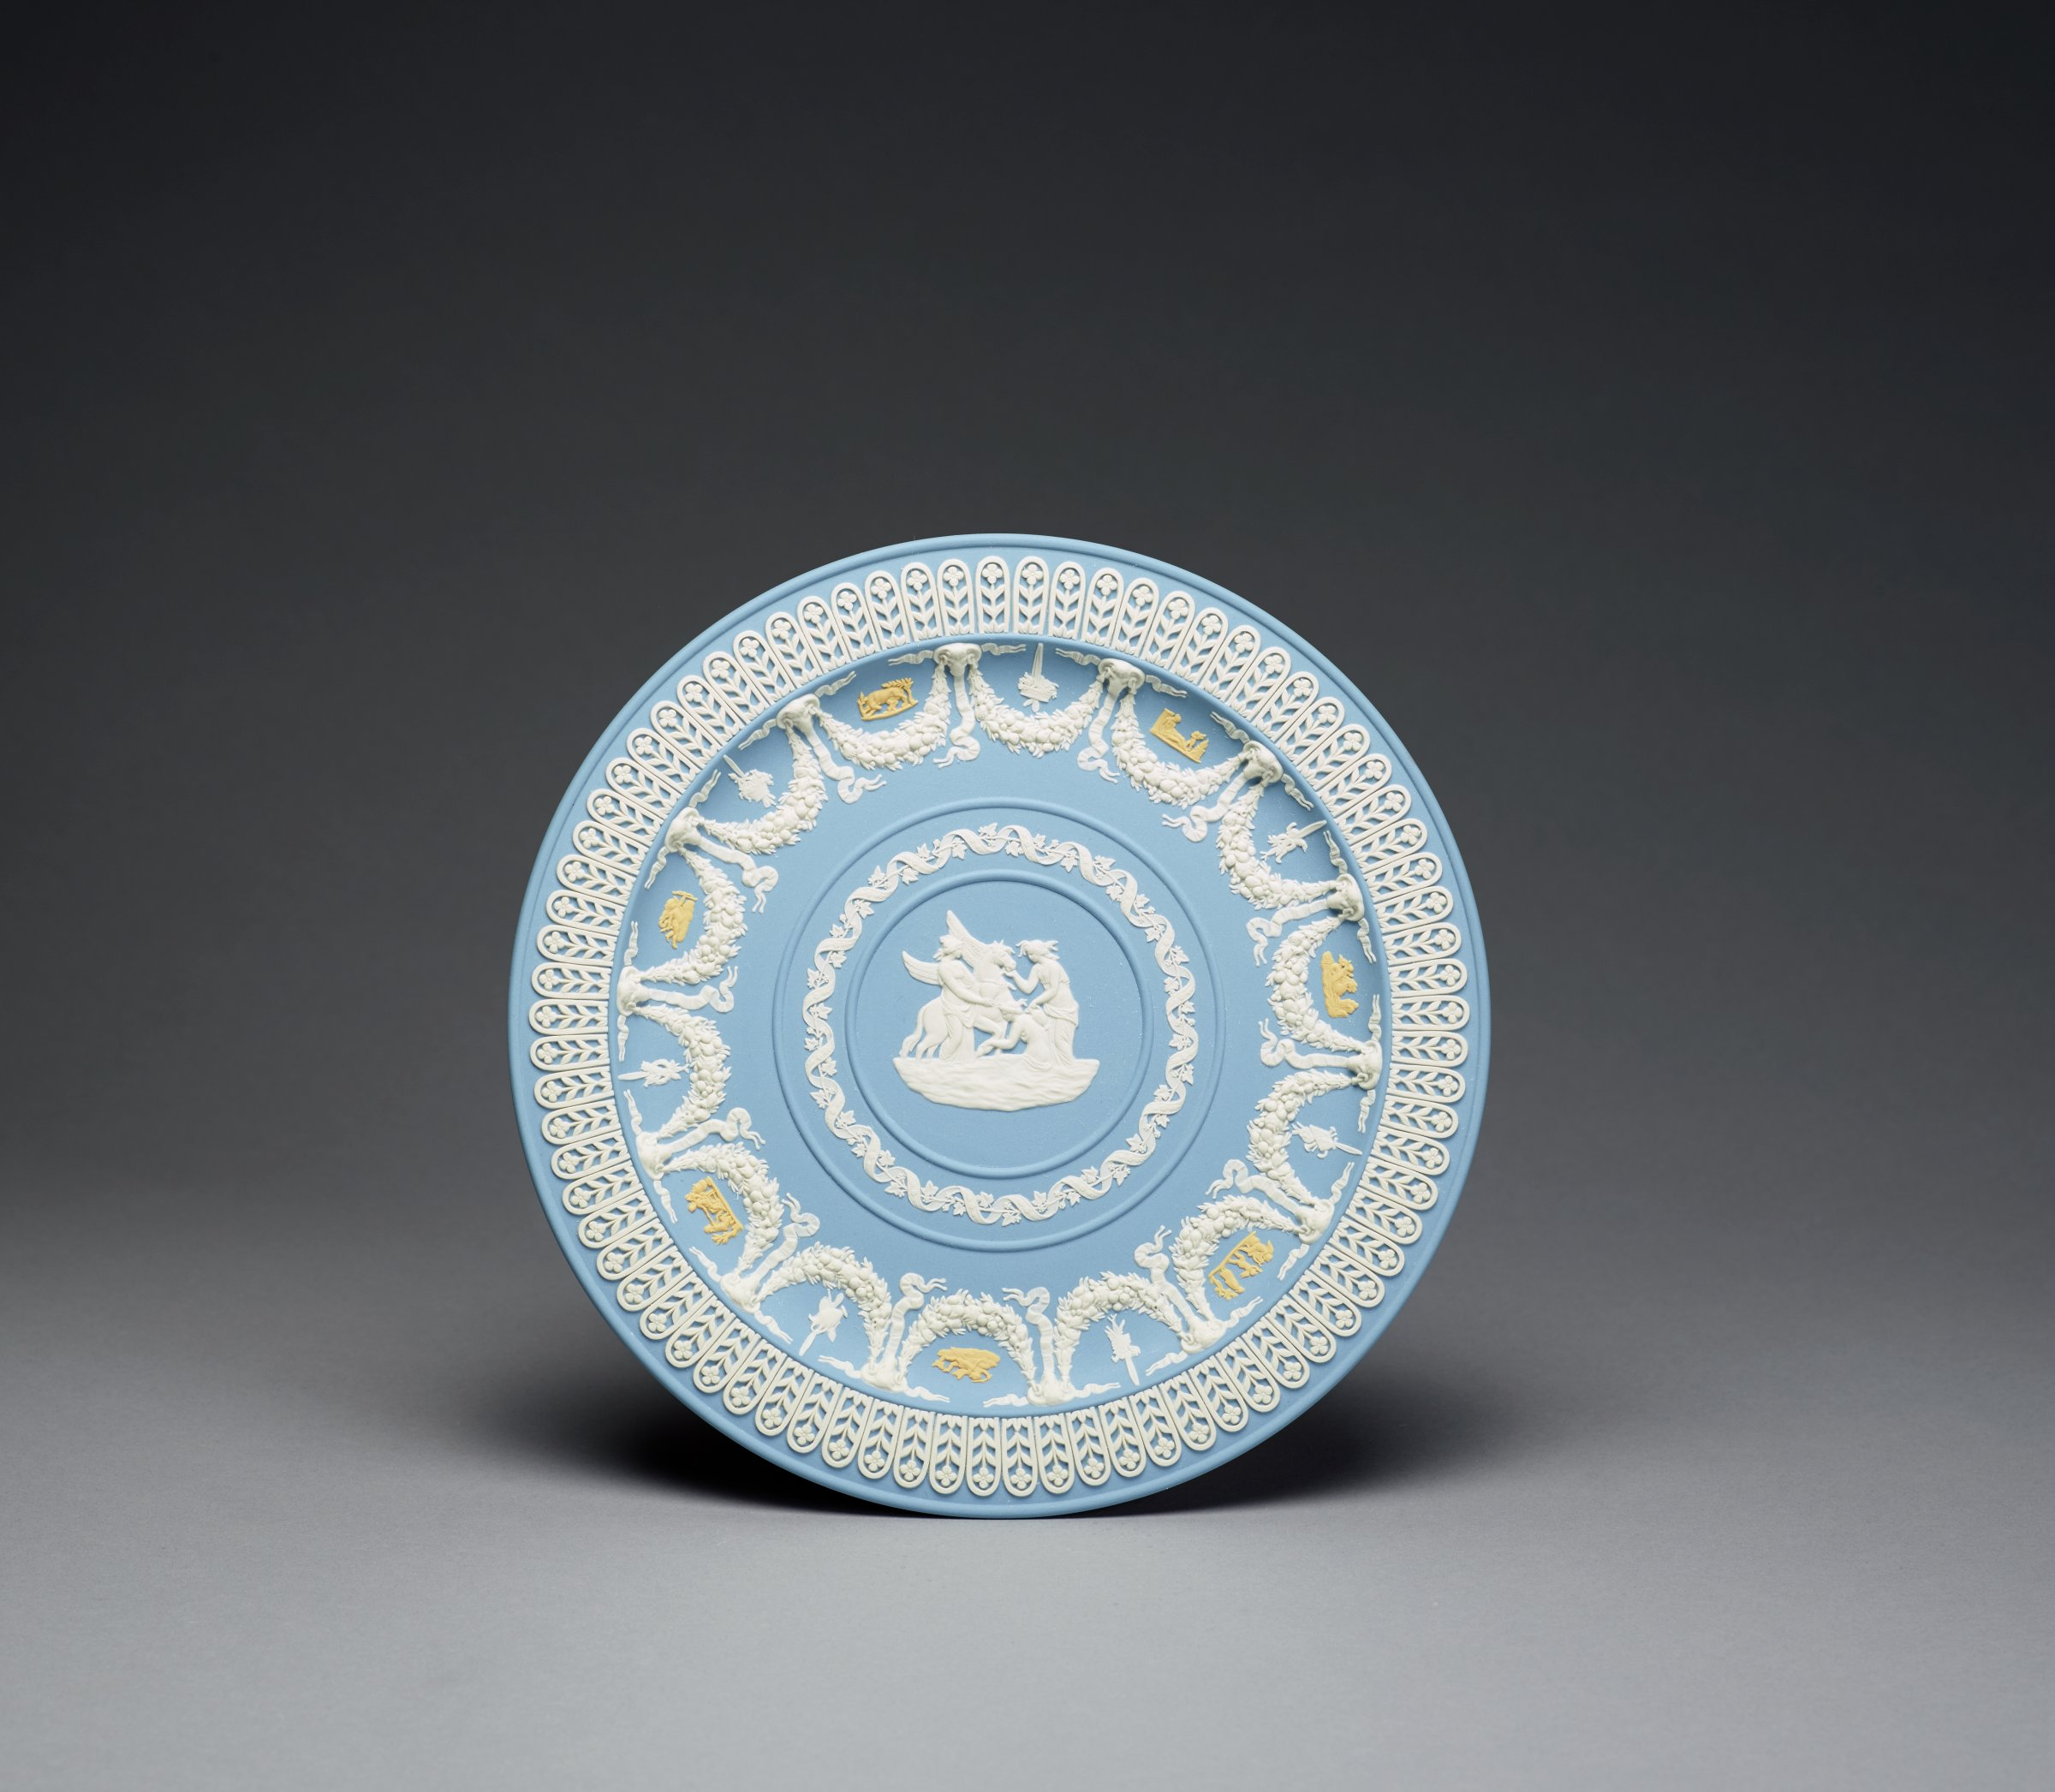 Solid light blue jasper plate with white and yellow relief decoration (tricolor) commemorating the 200th anniversary of the creation of jasperware, the edge with a border of framed, stylized floral elements, the inner well with heavy garlands hanging from ram's head masks with banners on either side and hanging below, between the garlands in yellow relief are small scenes of cupids and animals alternating with hanging trophies in white relief, in the center a band comprised of a ribbon encircling a leafy vine that encloses a relief scene of the Muses Watering Pegasus.